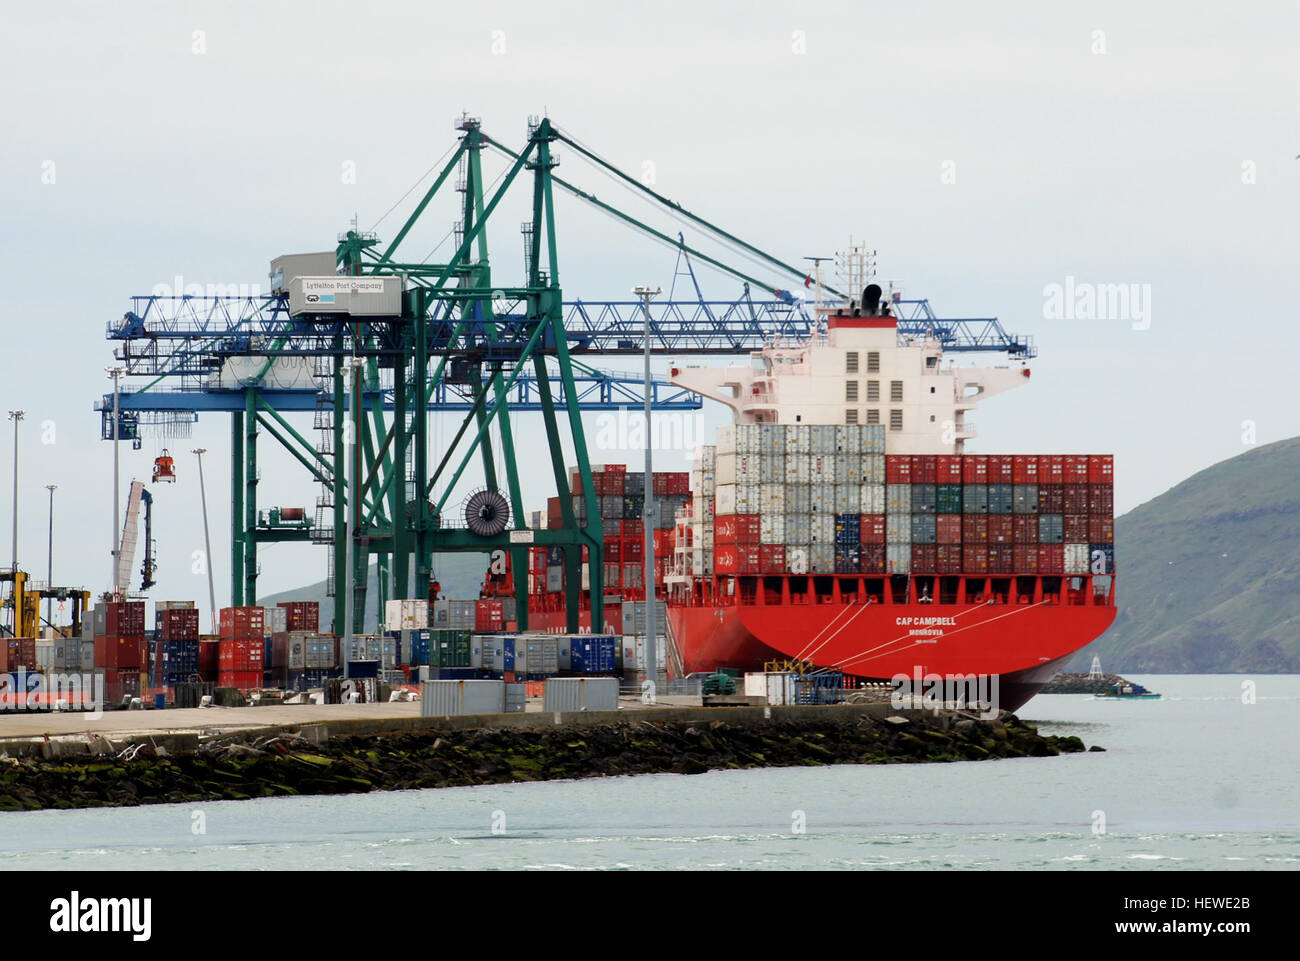 Cap Campbell Details       Type: Container Vessel  Built: 2013  Flag:Liberia        Yard Zhejiang Sinopacific Shipyard - Stock Image